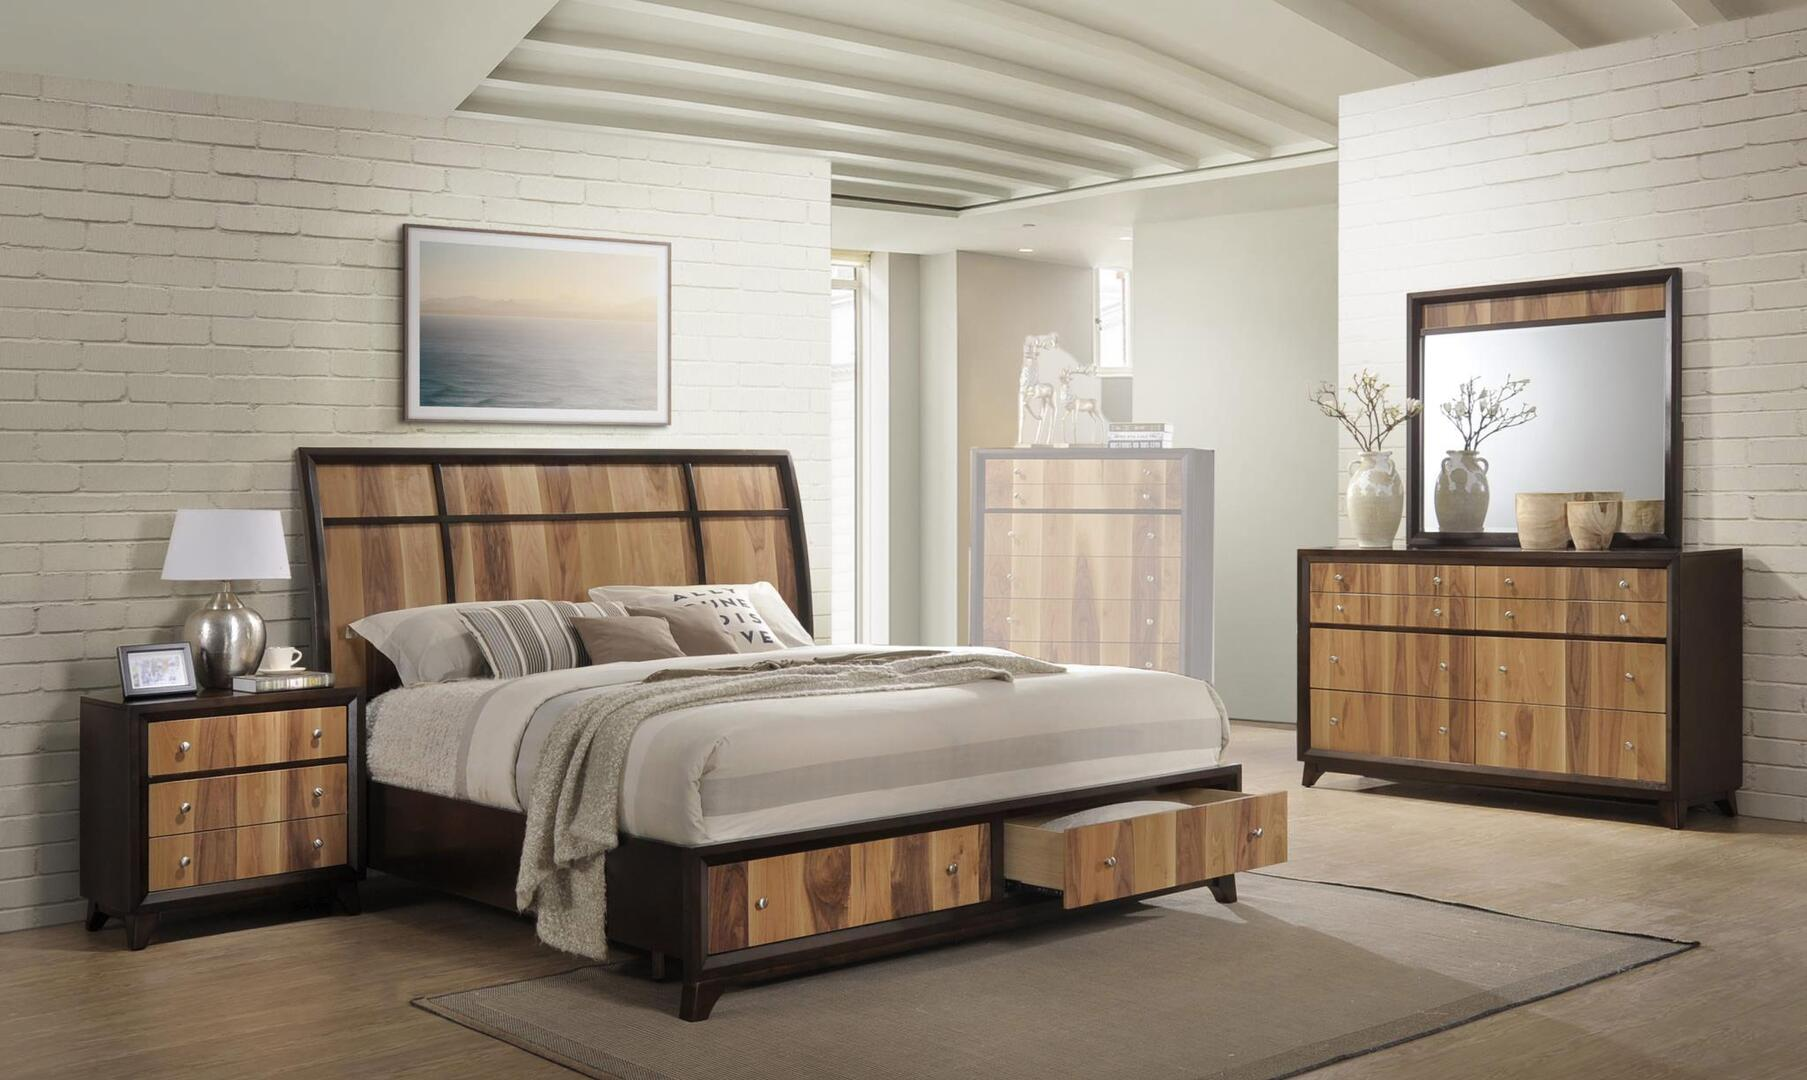 Myco Furniture Ava Collection Av6120knmdr 4 Piece Bedroom Set With